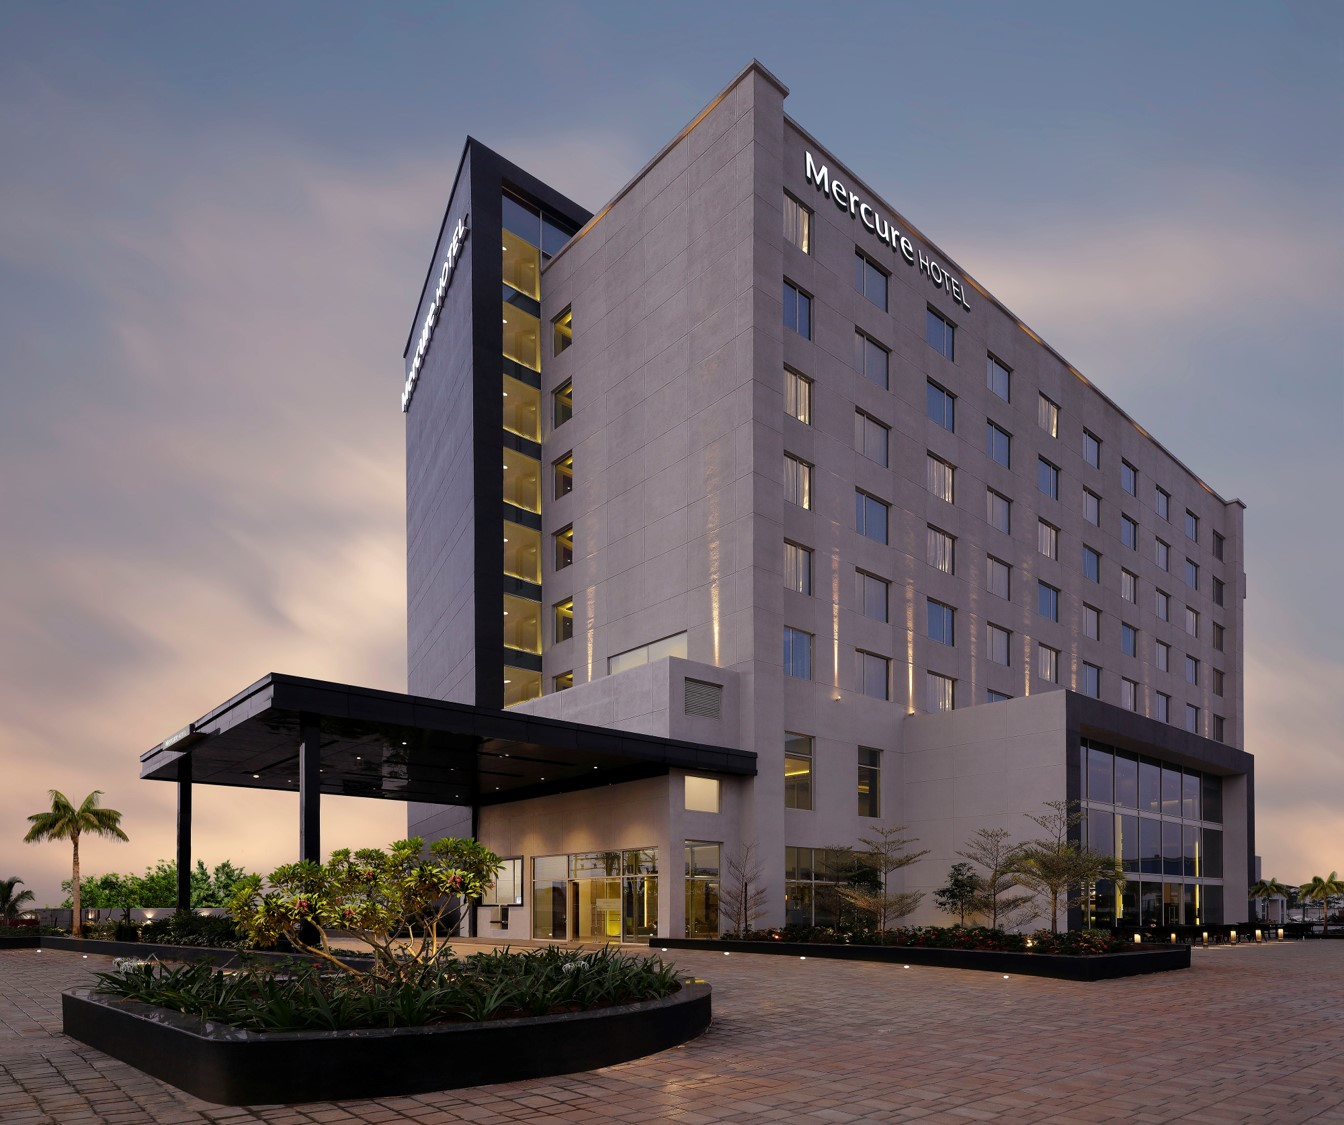 AccorHotels' First International Hotel in Chennai, India Revealed